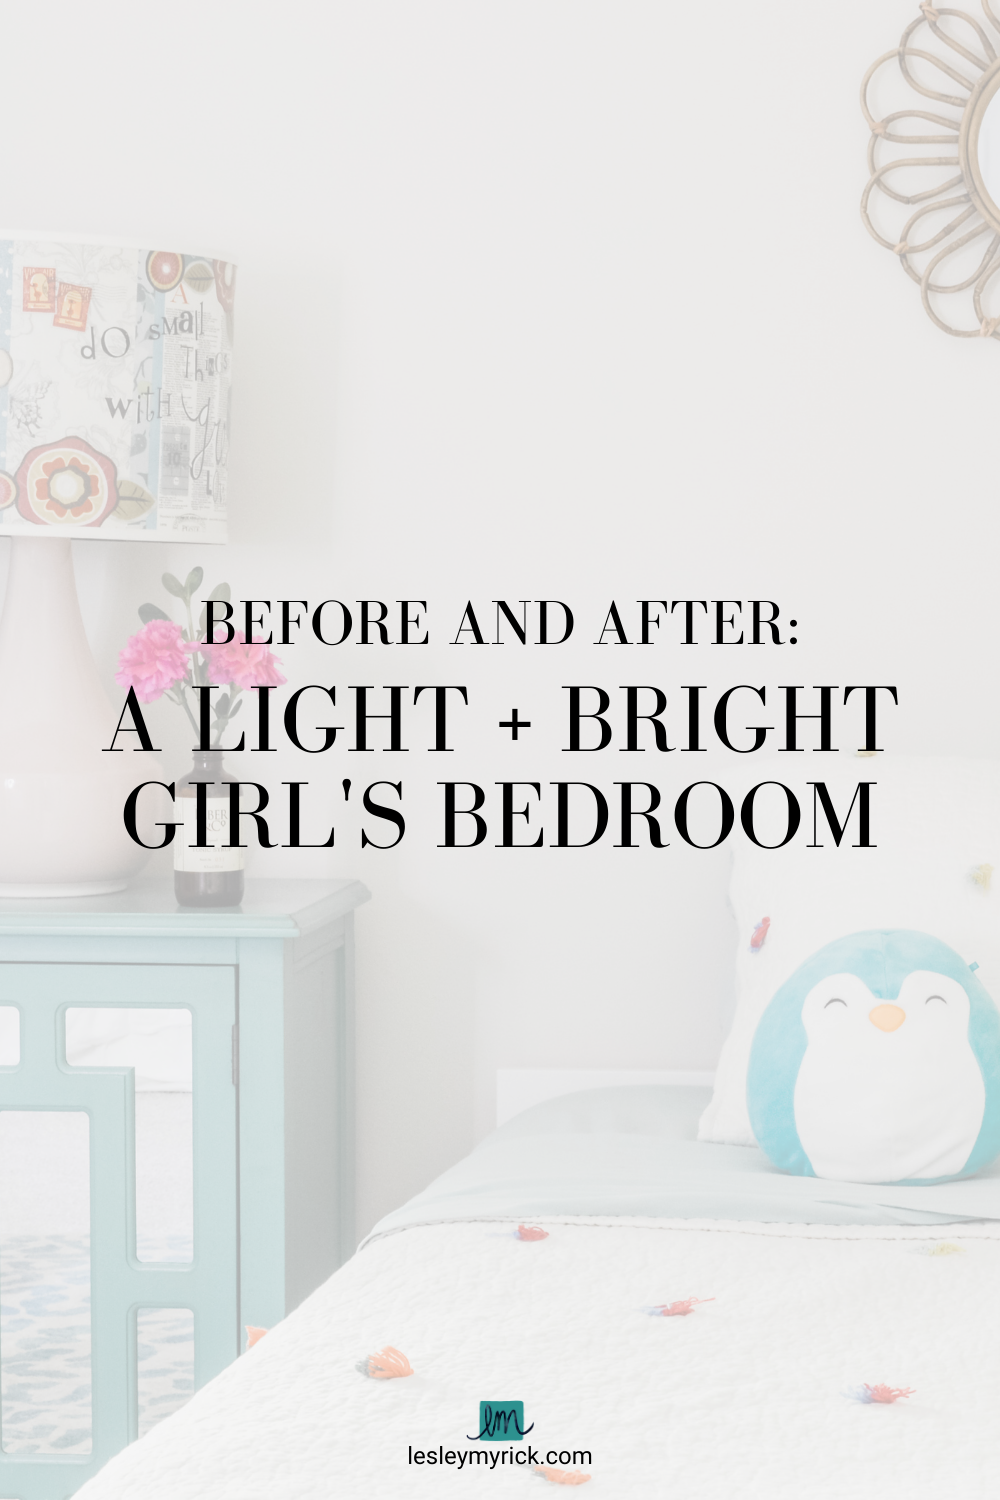 Before and After: A light and bright girl's bedroom designed by interior designer Lesley Myrick